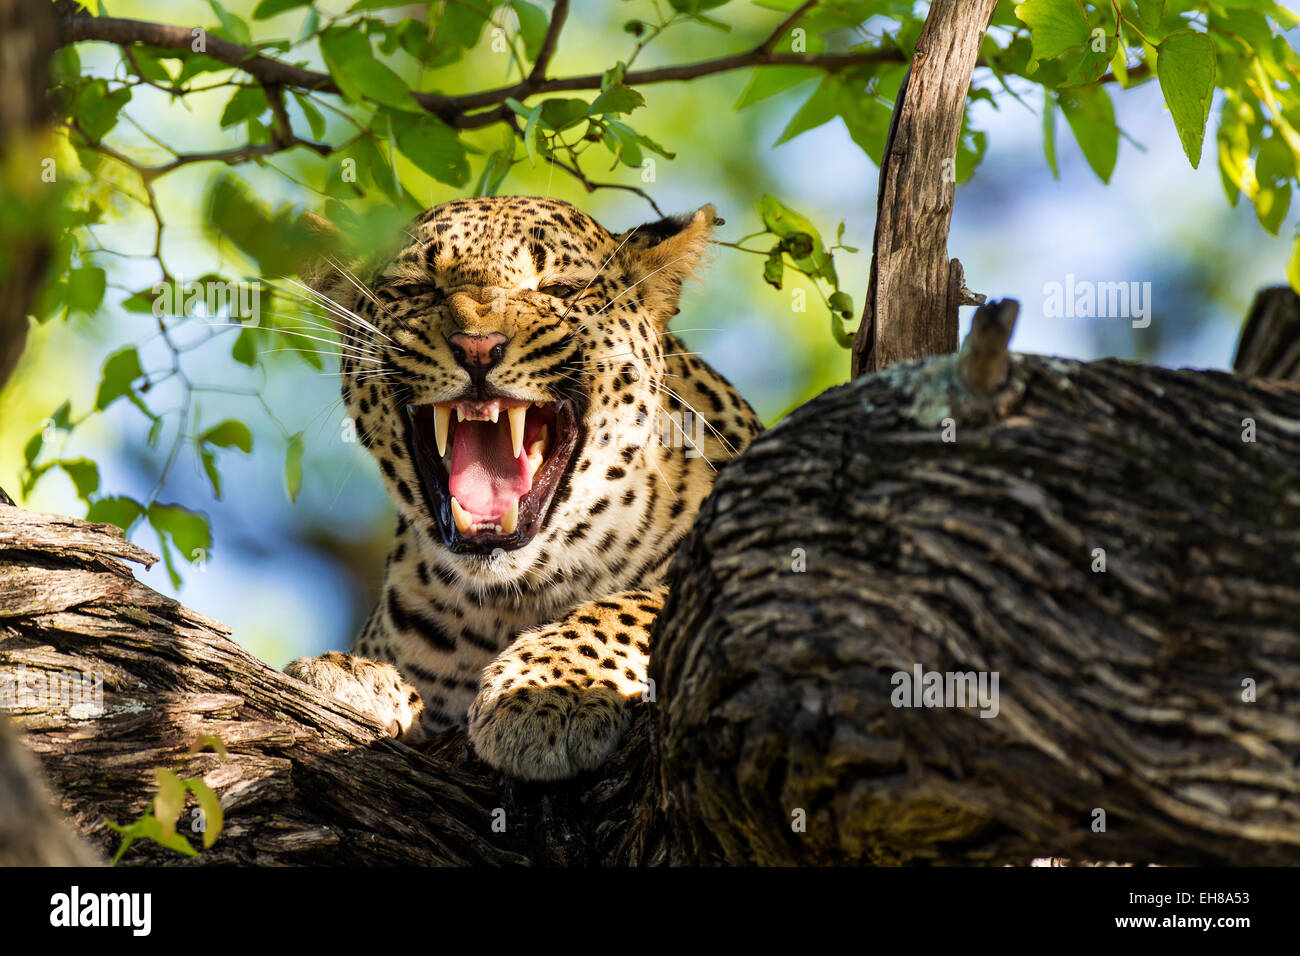 A leopard snarling at the camera - Stock Image